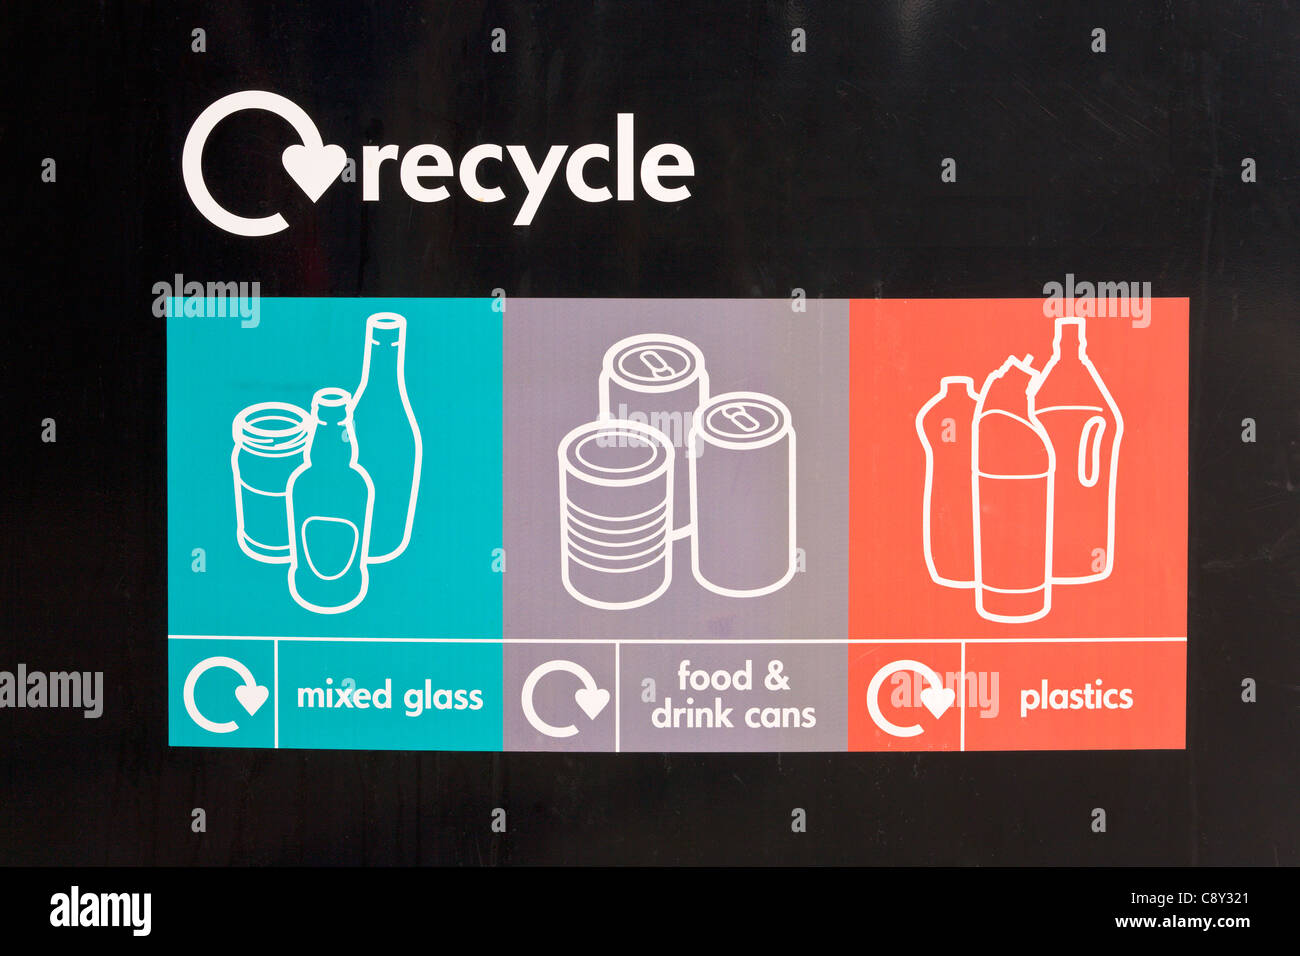 Recycle notice for mixed glass, food and drink cans and plastics - Stock Image